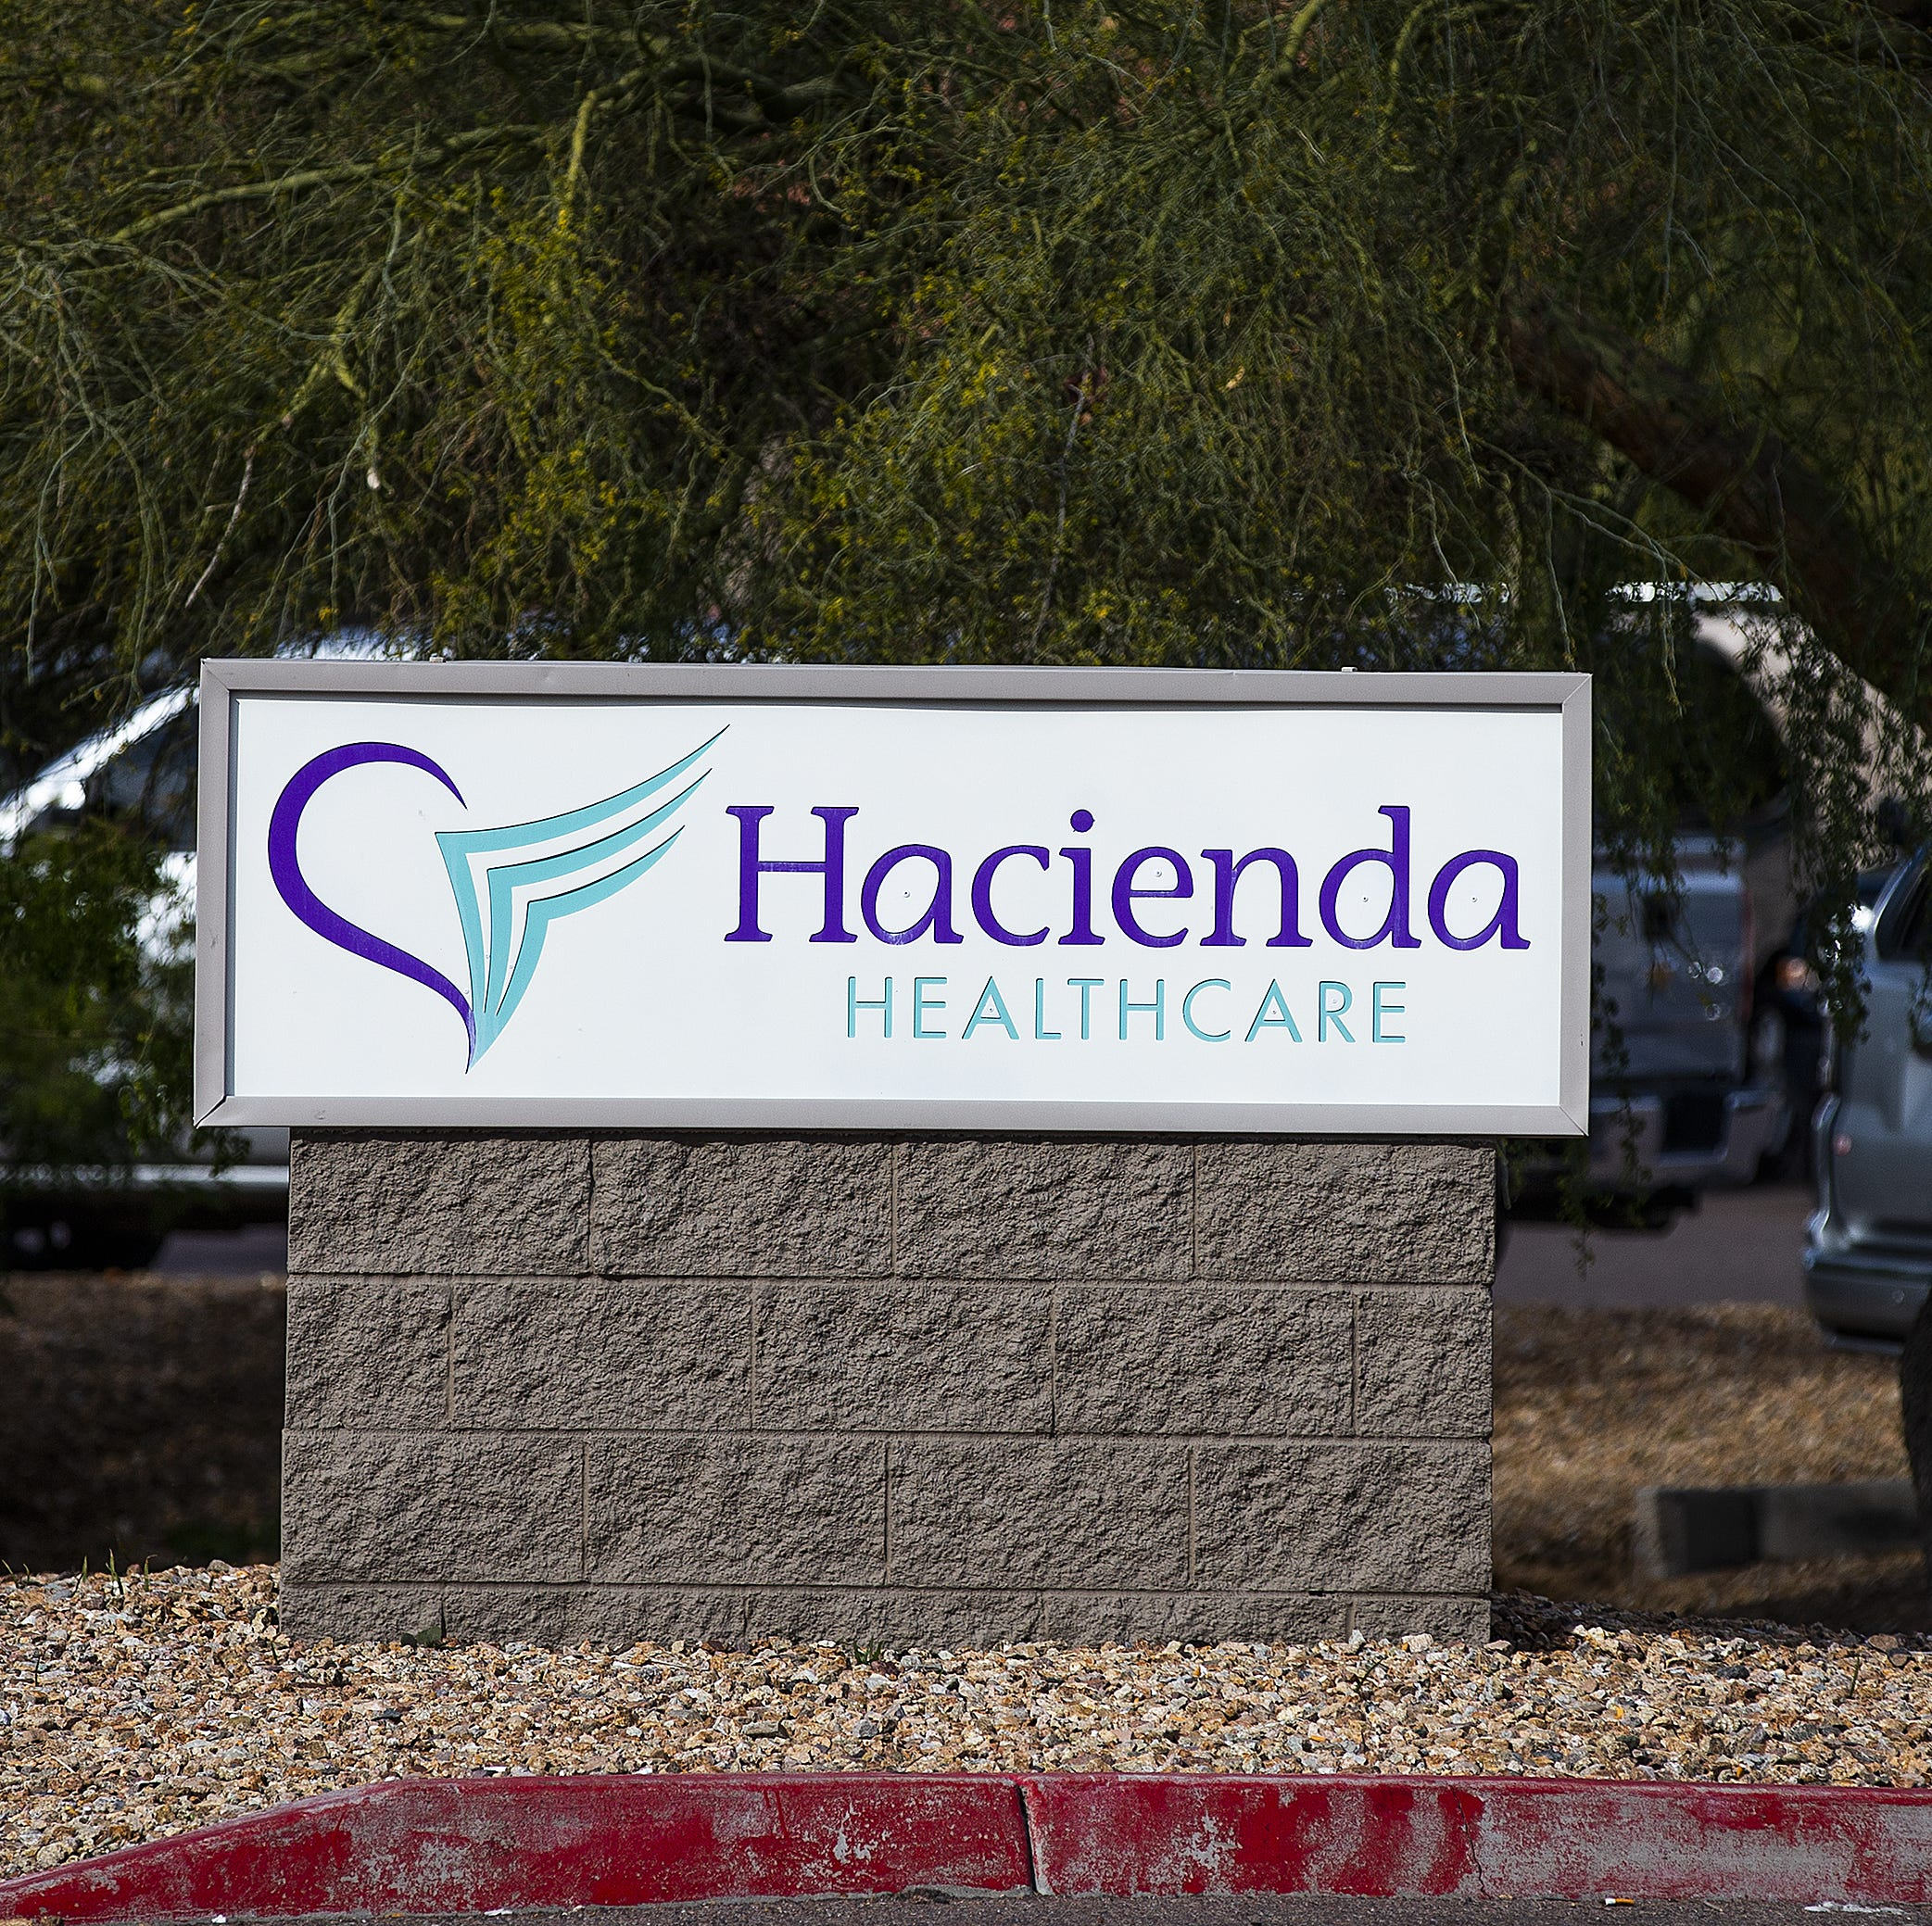 Hacienda rape victim is not comatose, lawyer representing her family says